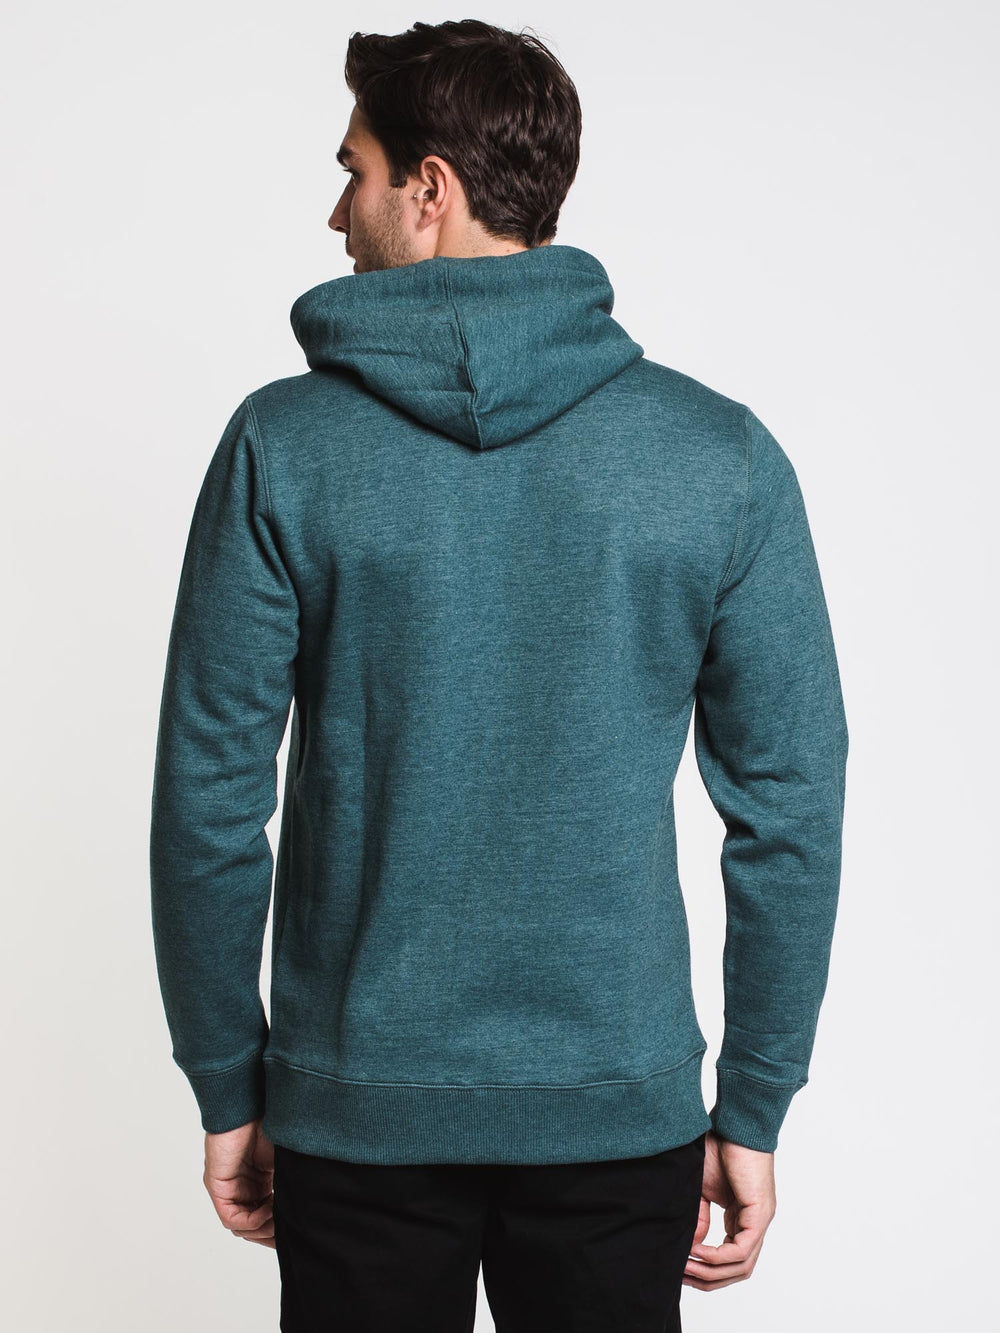 MENS ALL DAY PULLOVER HOODIE - HTHR TEAL